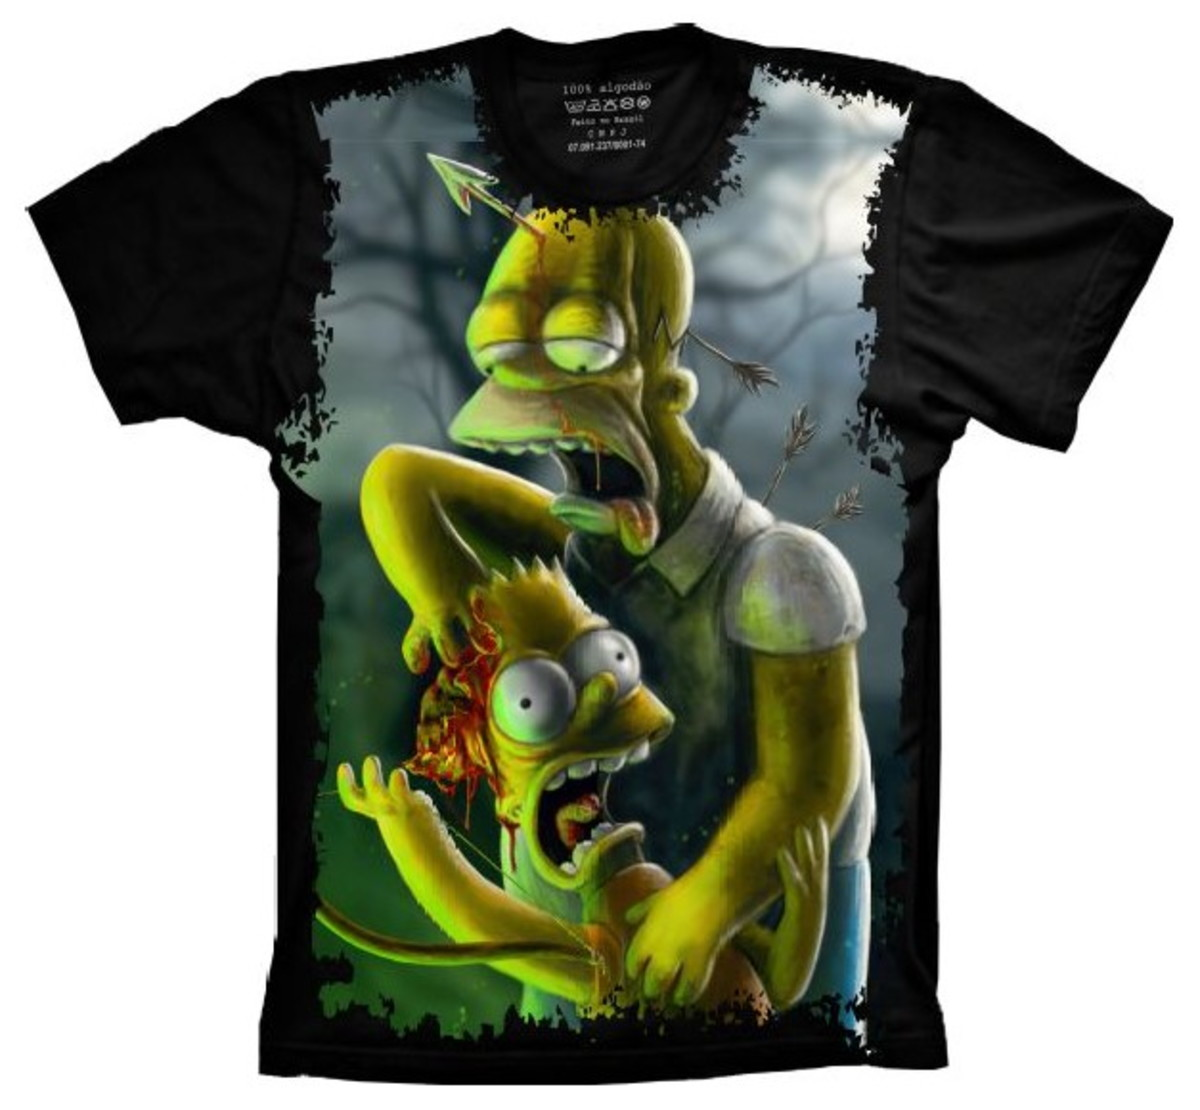 5227ea2ebfb7c Camiseta Simpsons Homer Bart Zumbis no Elo7 | Estampas Criativas ...